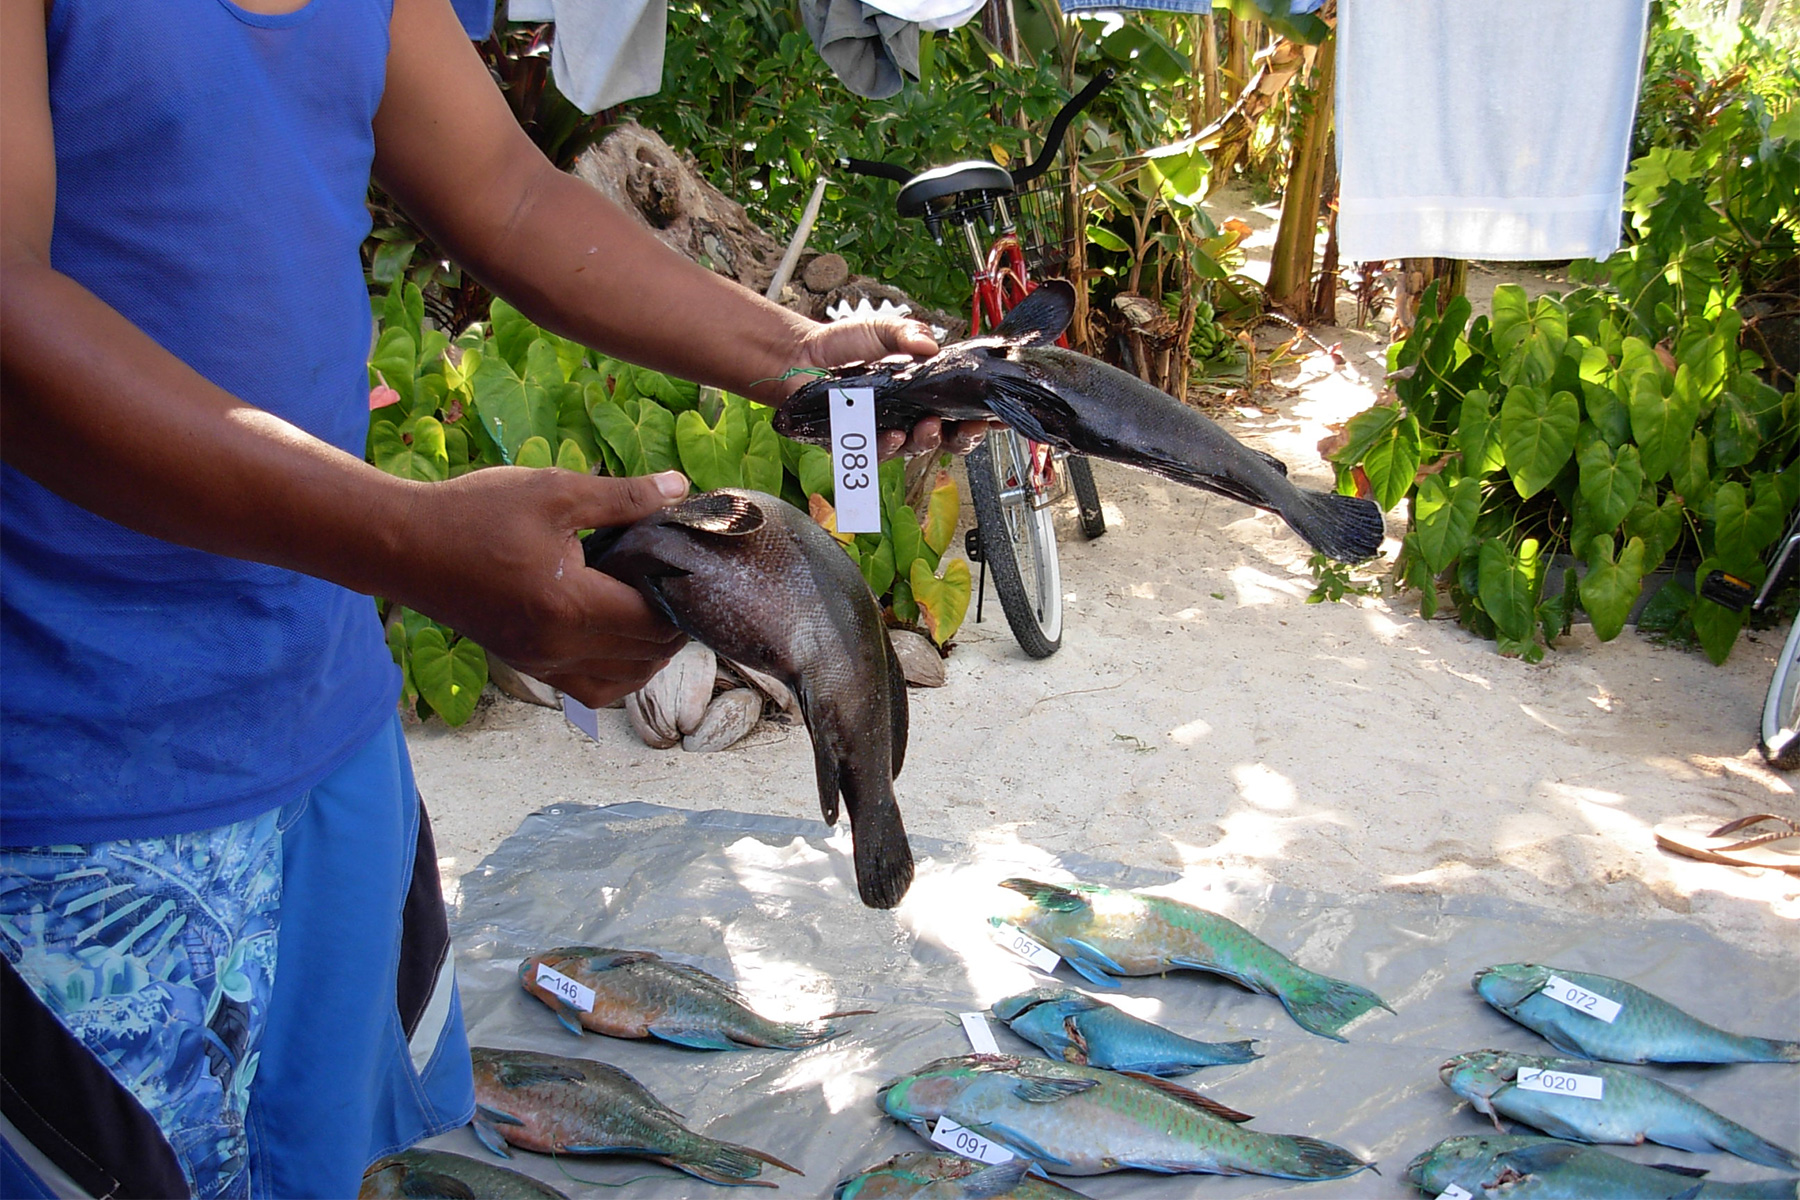 demonstrating the rigor-mortis test for ciguatera in reef fish